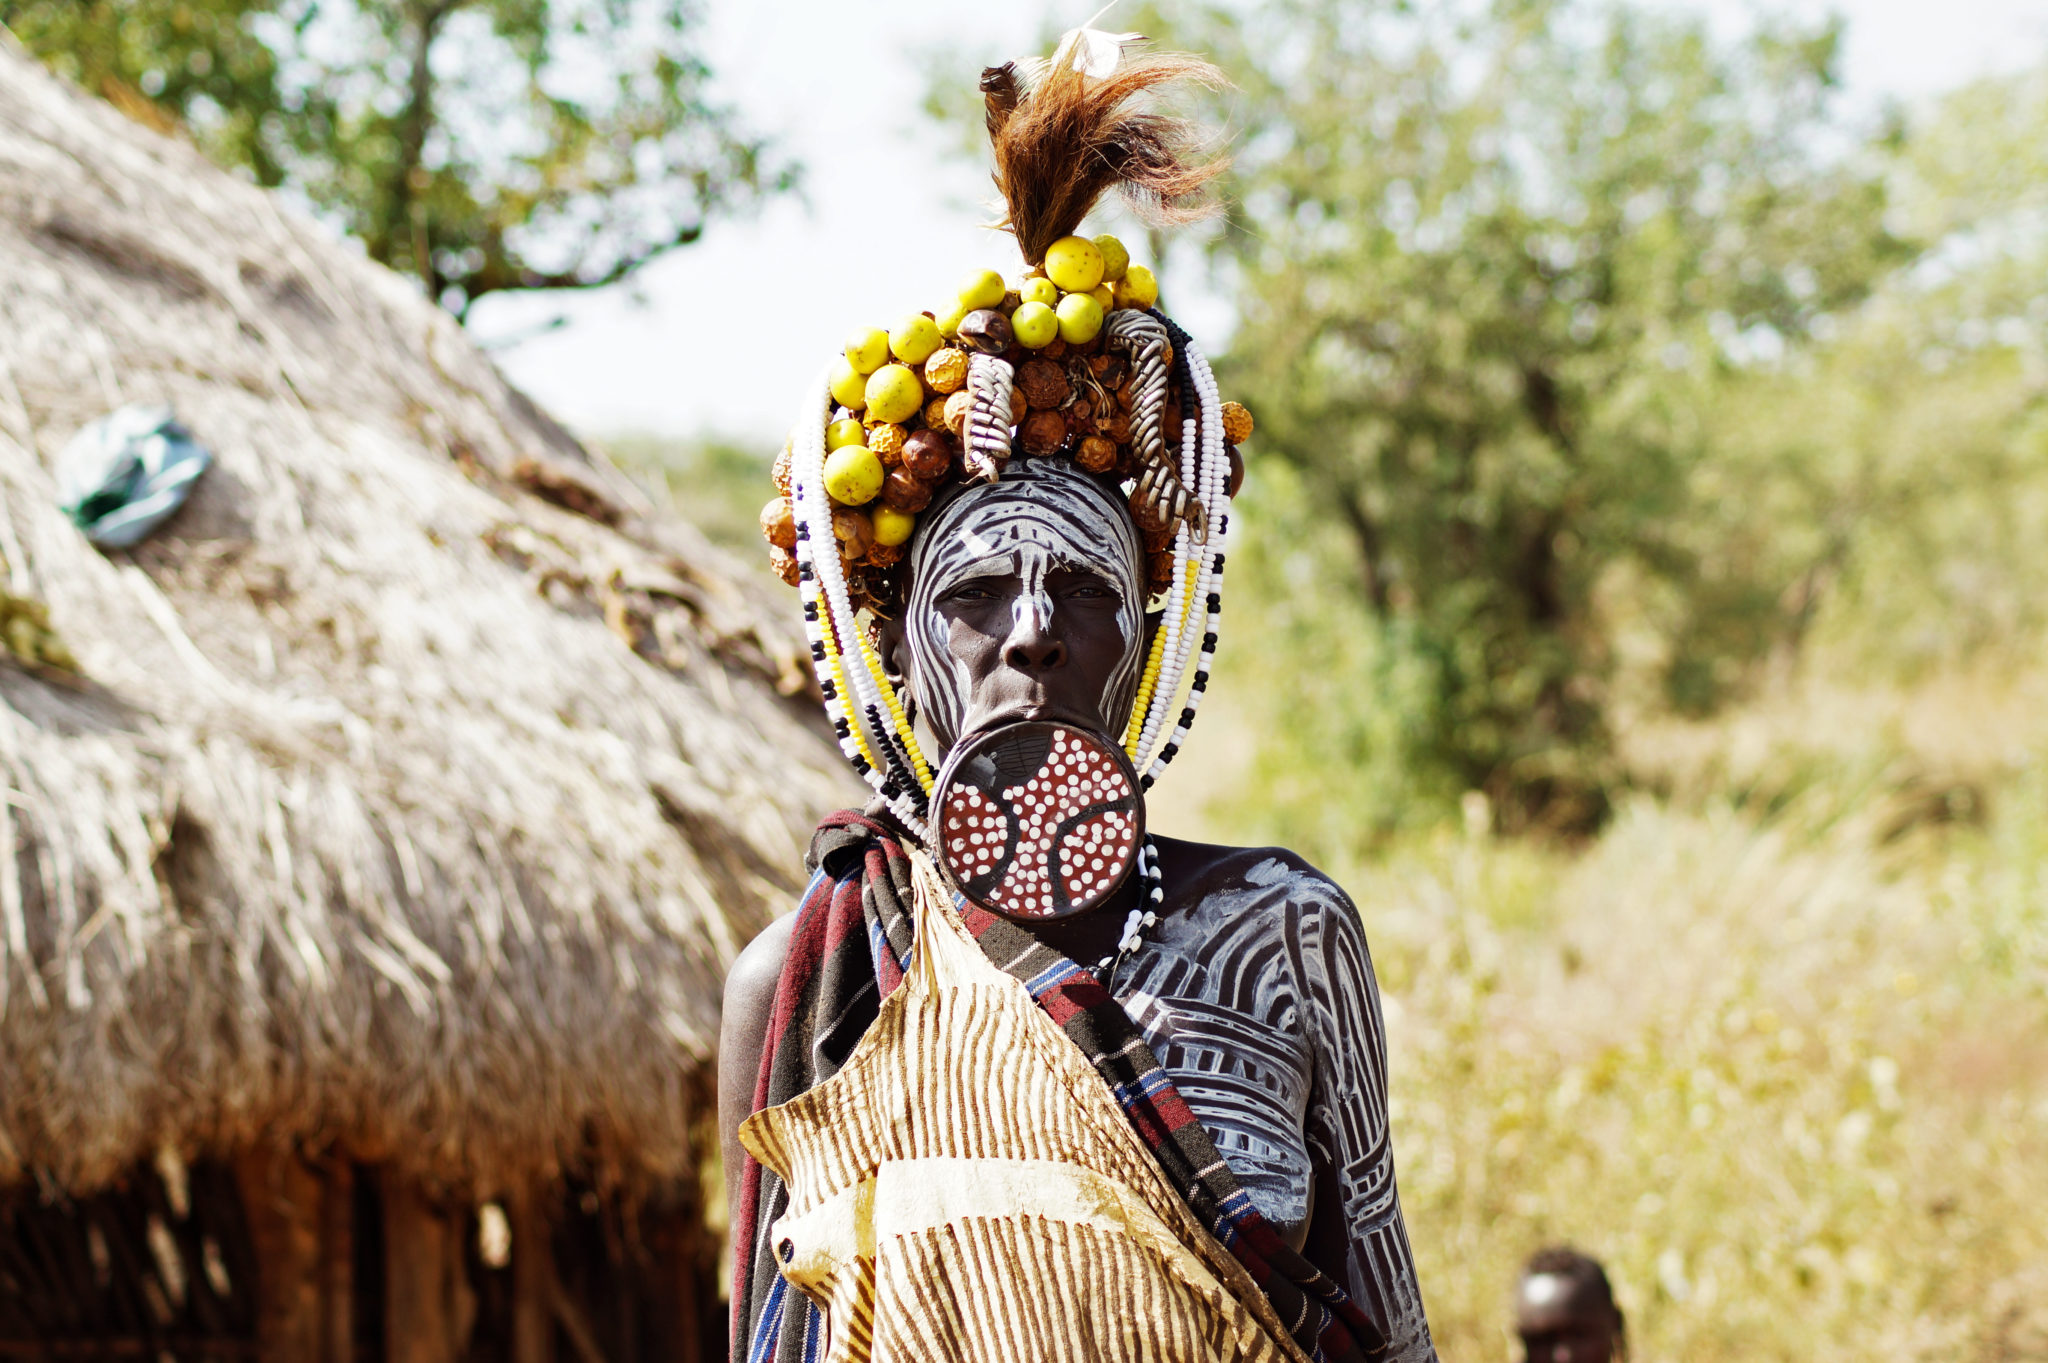 Mursi people in Ethiopia: Bad tourism for a good cause